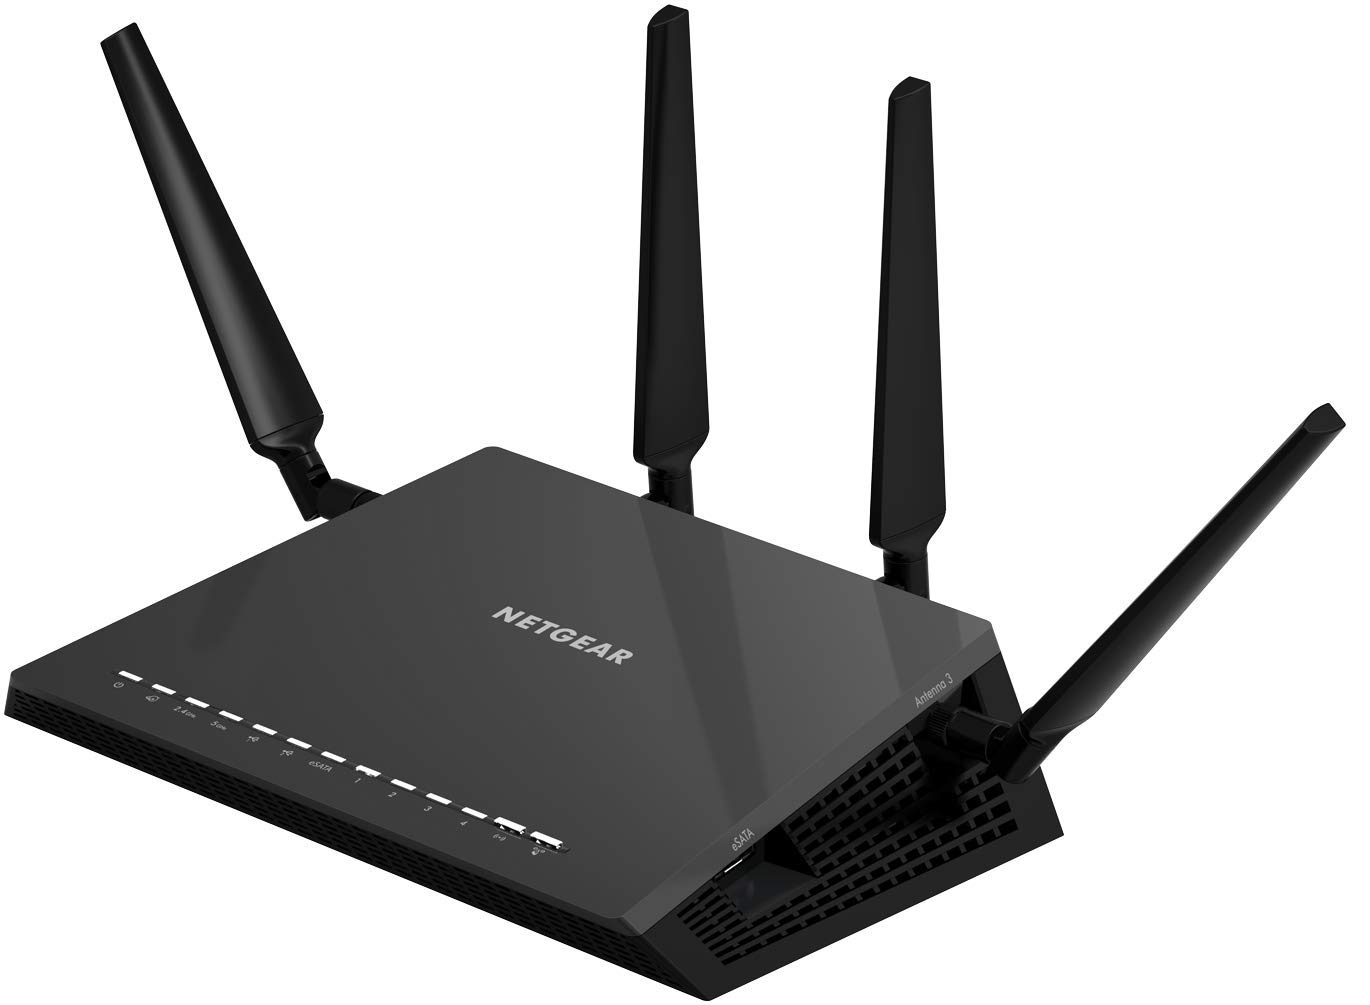 NETGEAR Nighthawk X4S AC2600 4x4 Dual Band Smart WiFi Router, Compatible with Amazon Echo/Alexa (R7800)